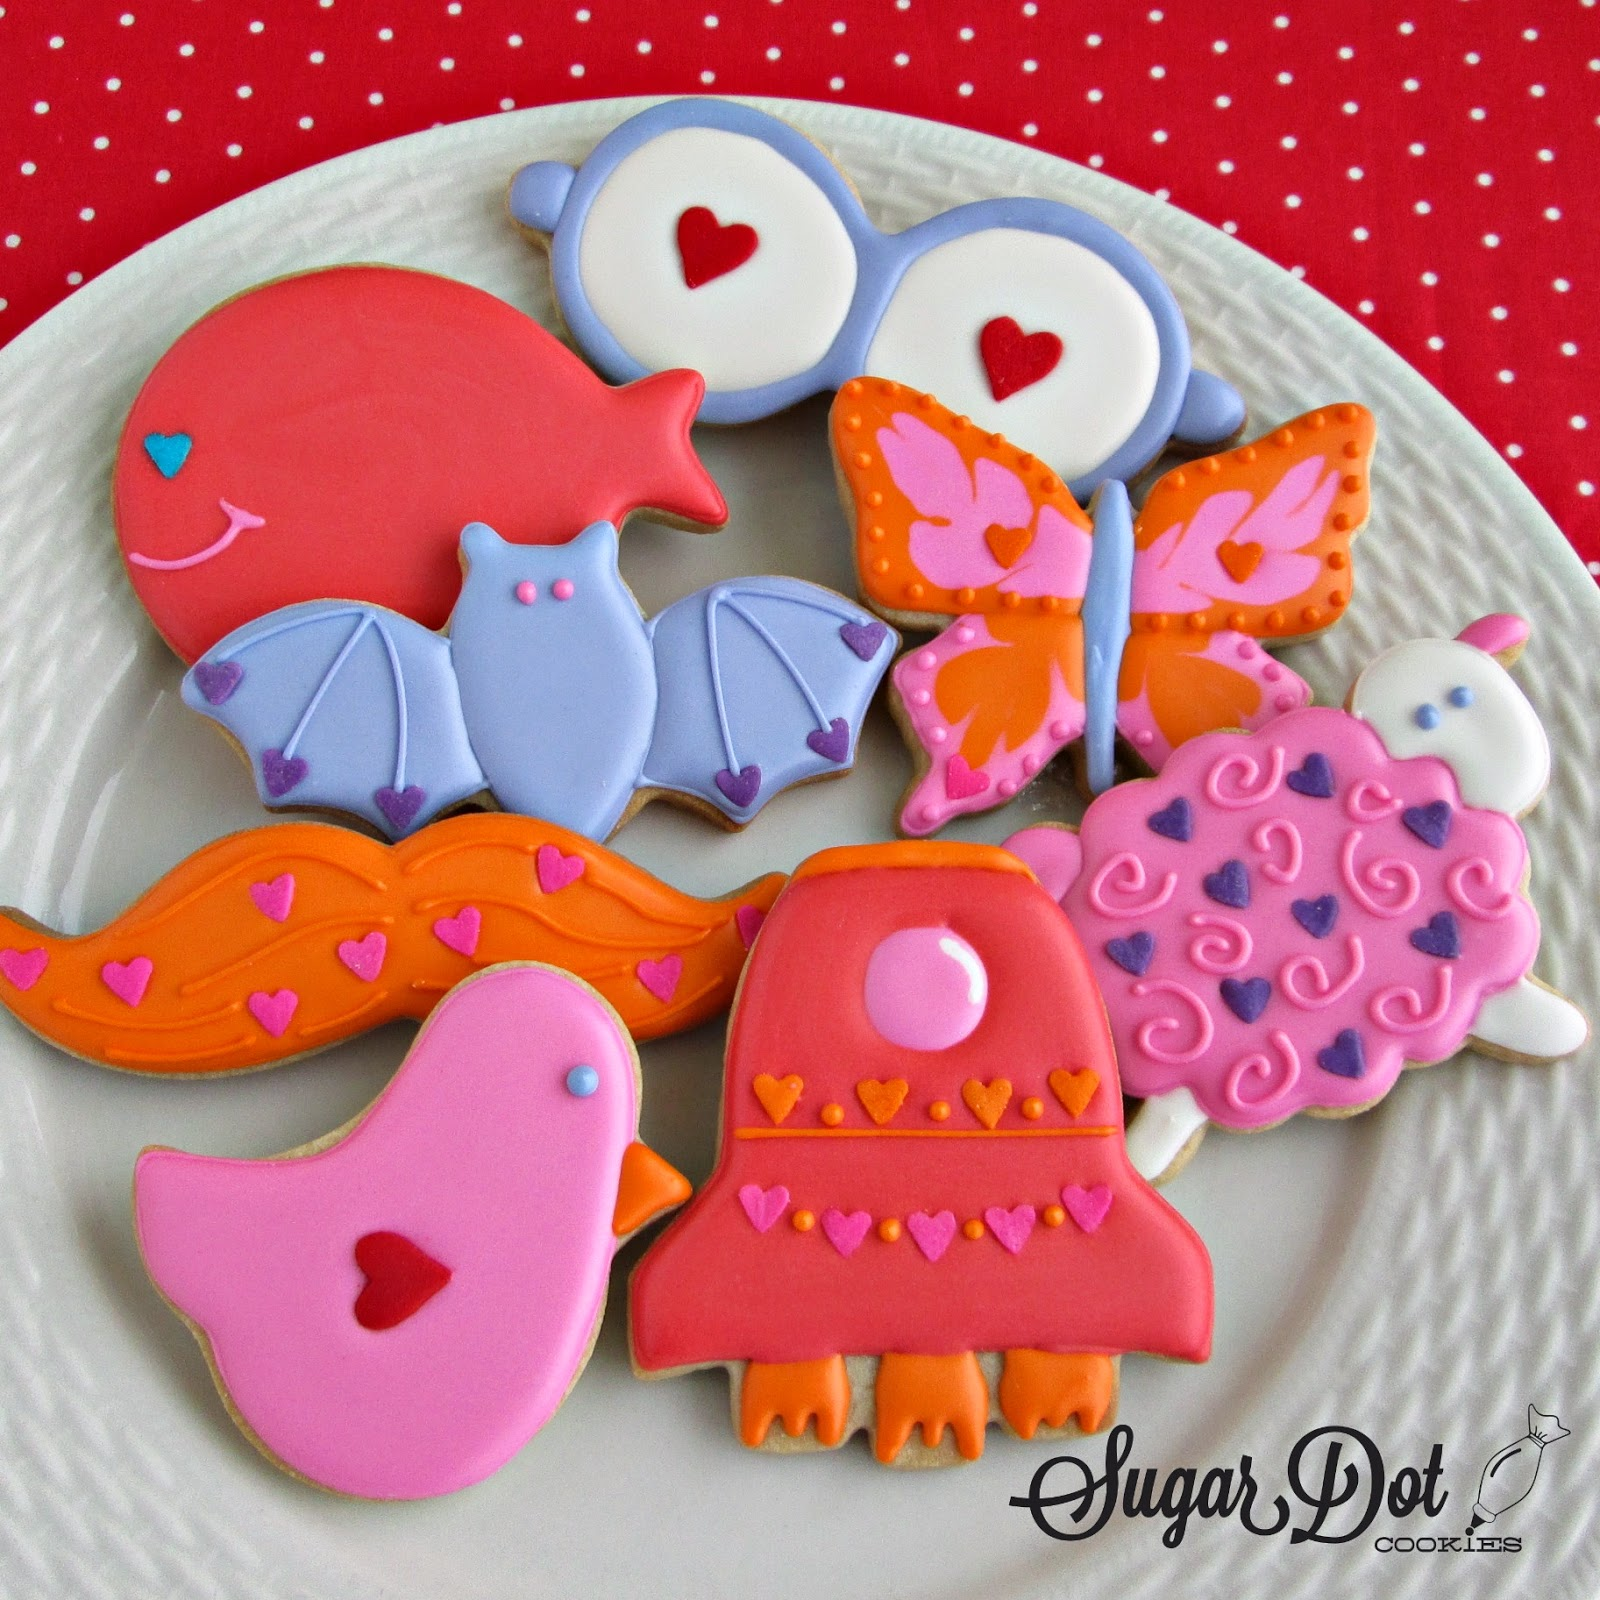 Join me for a cookie decorating party! We'll be decorating ...